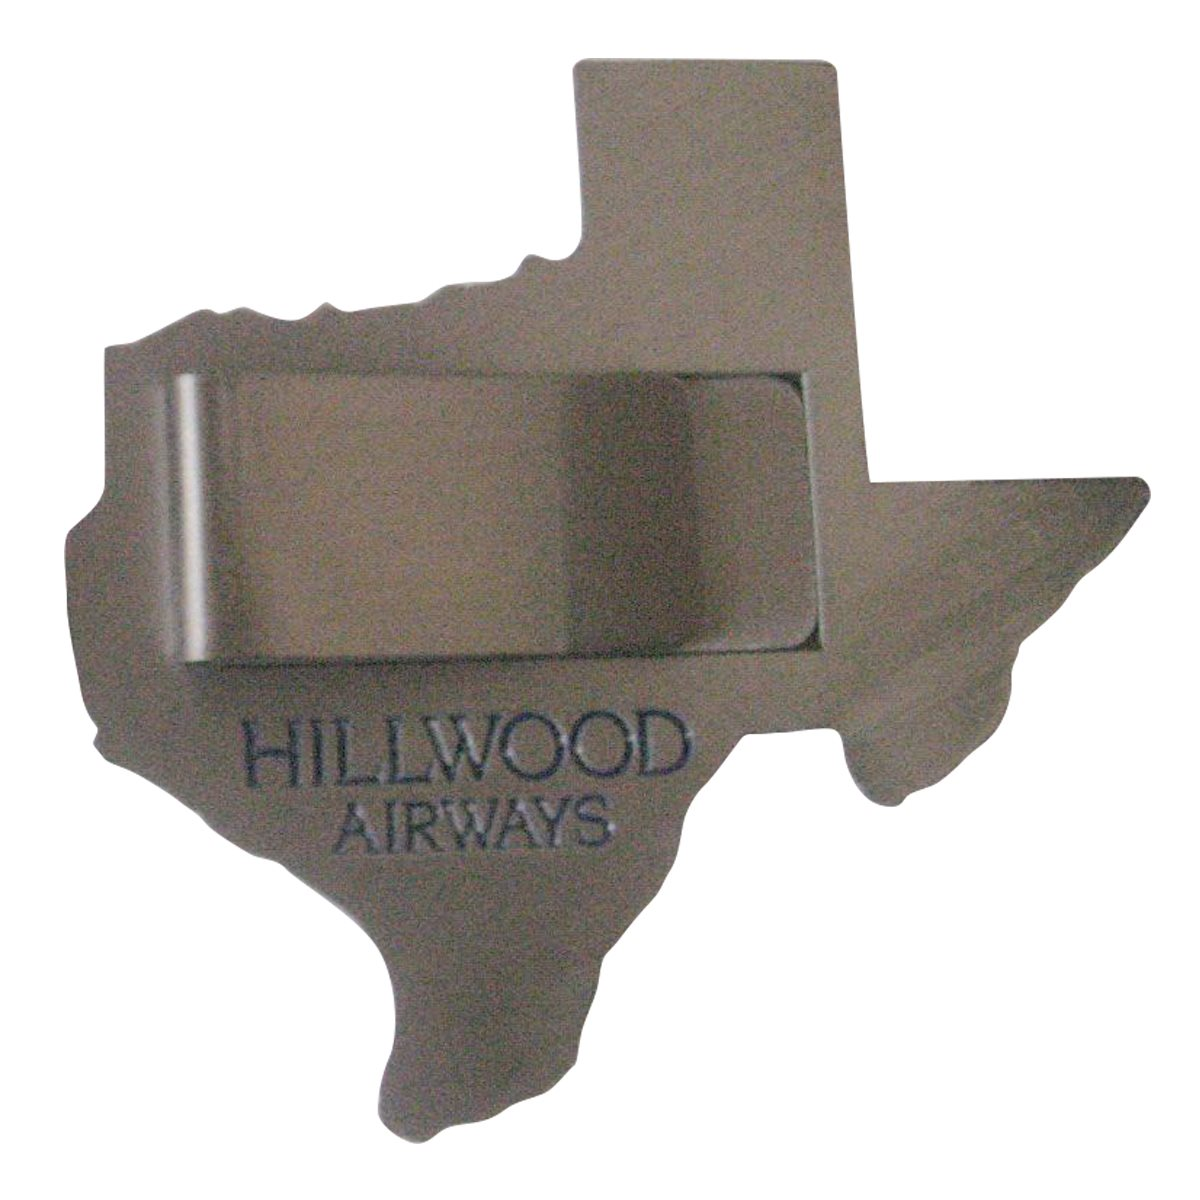 Hillwood Airways FBO Money Clip Coin Back Sample